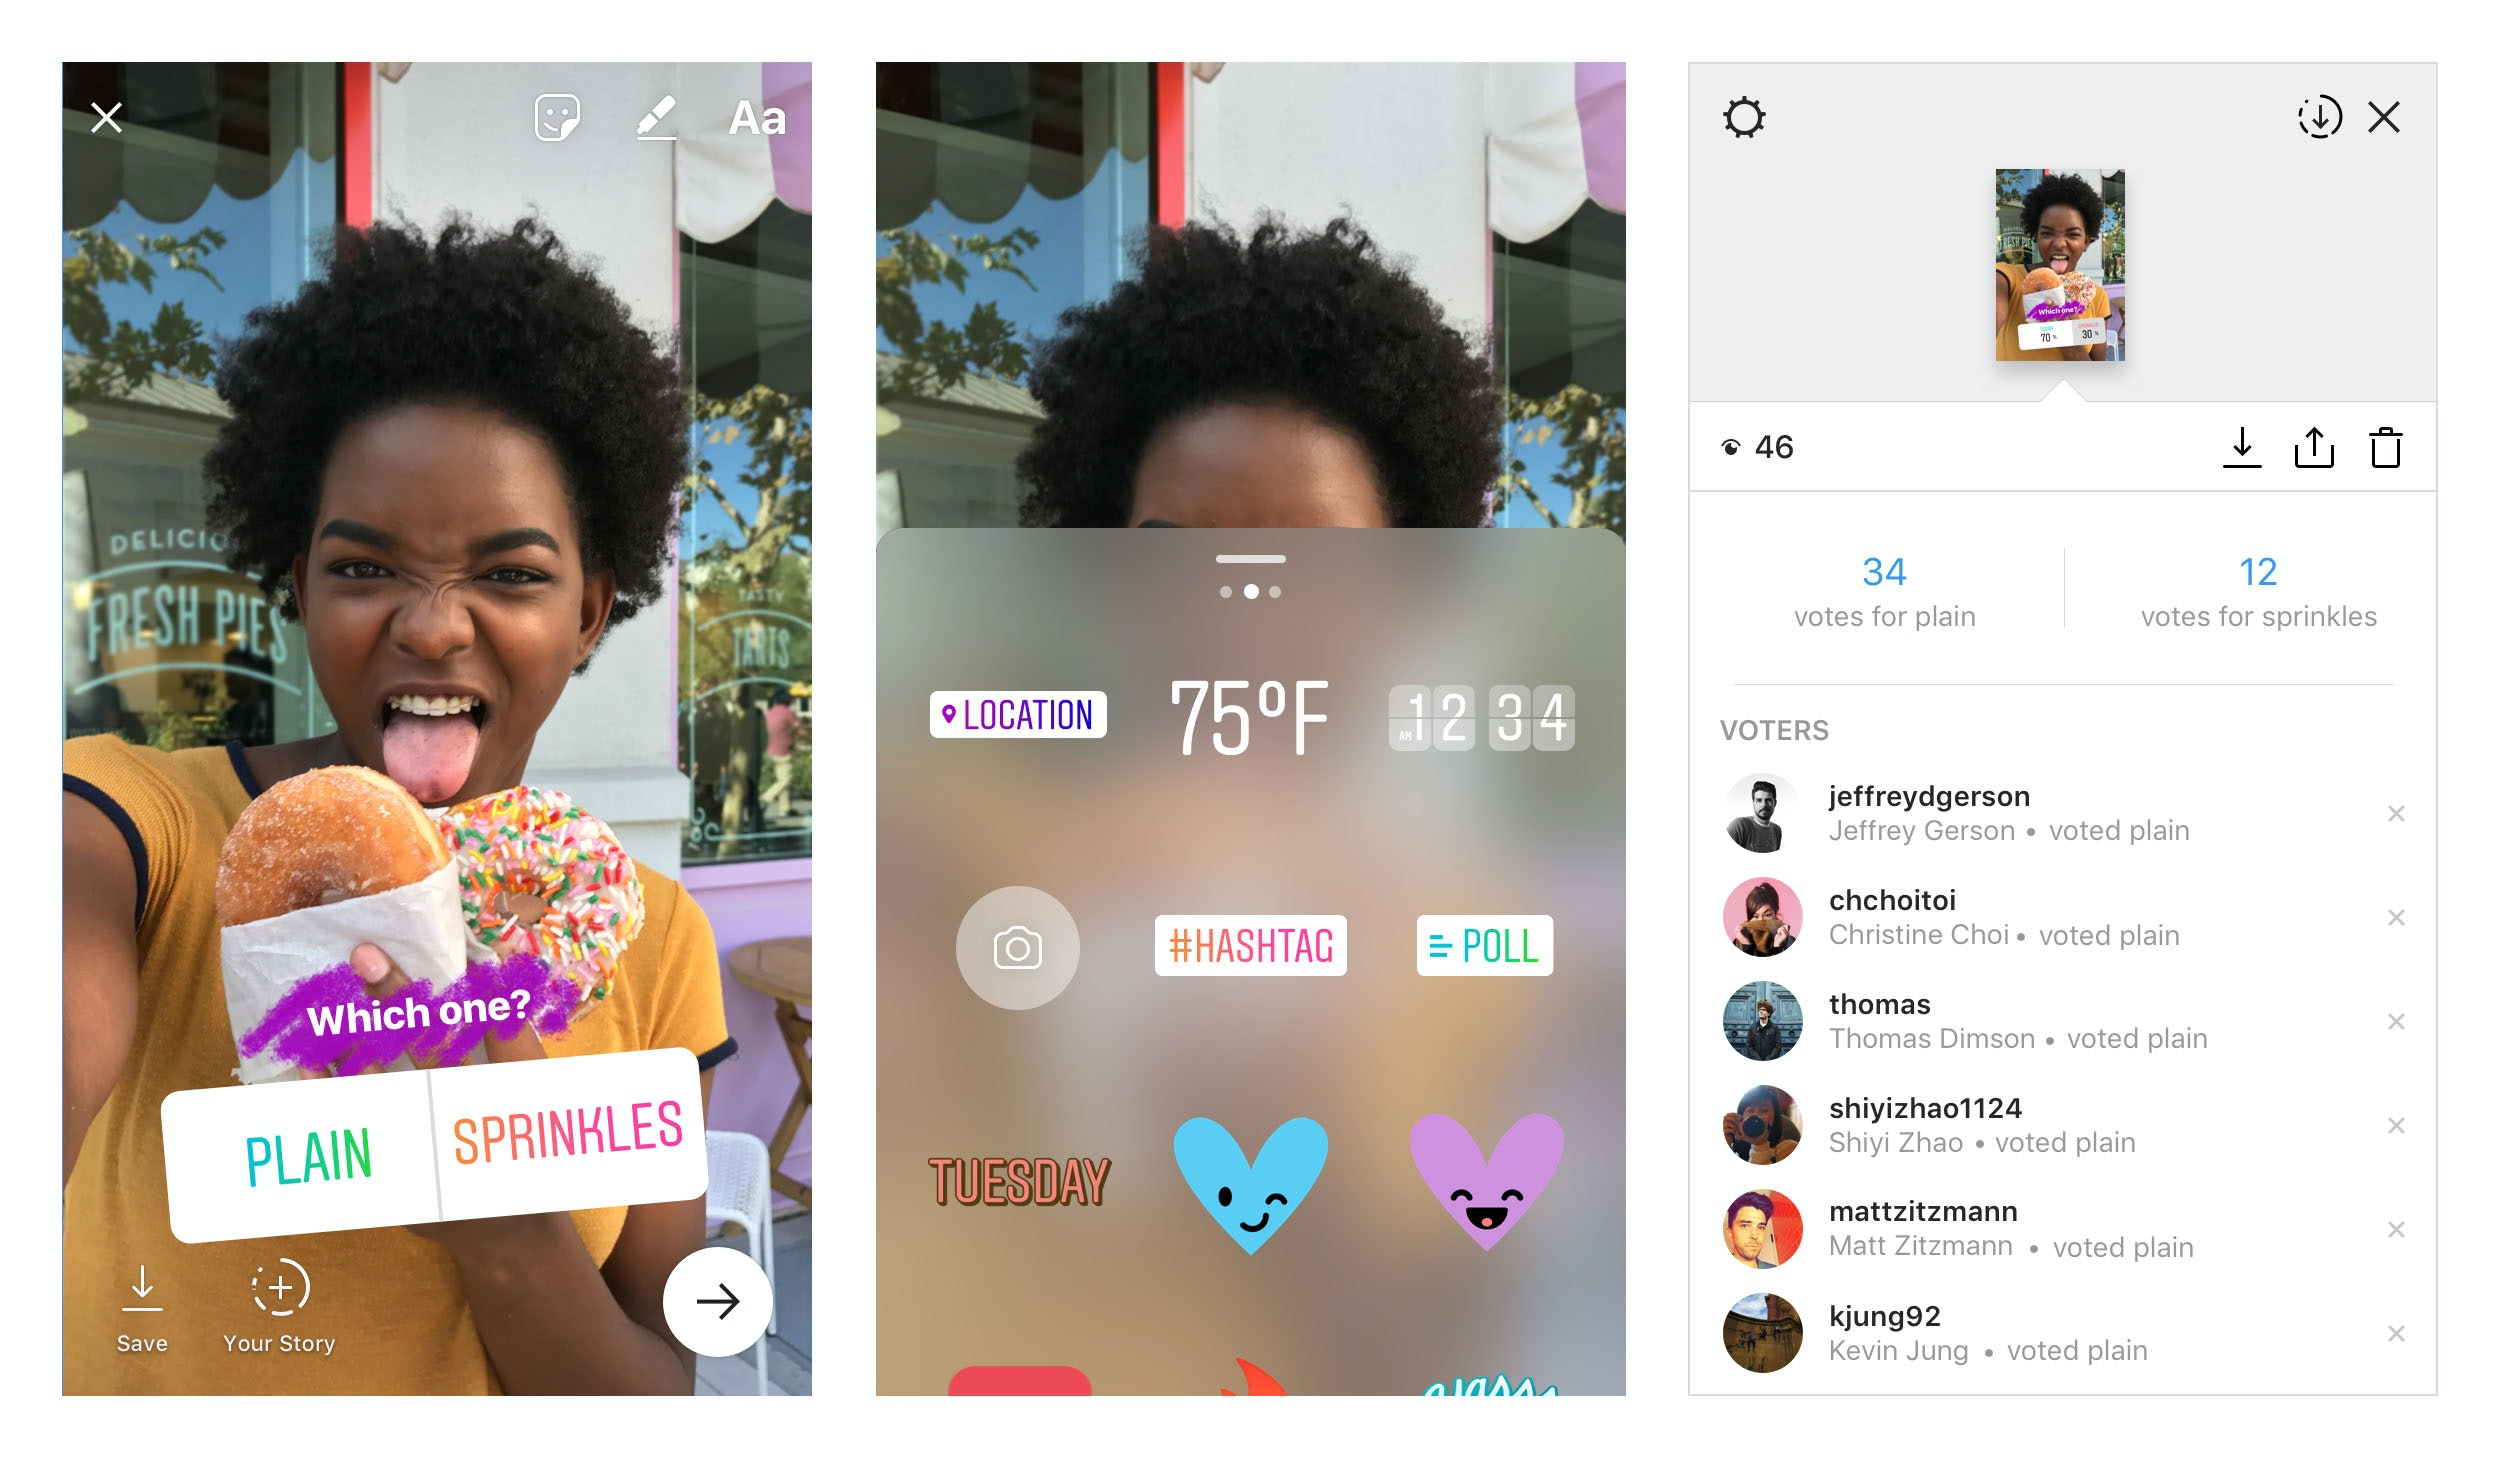 Introducing Polls in Instagram Stories